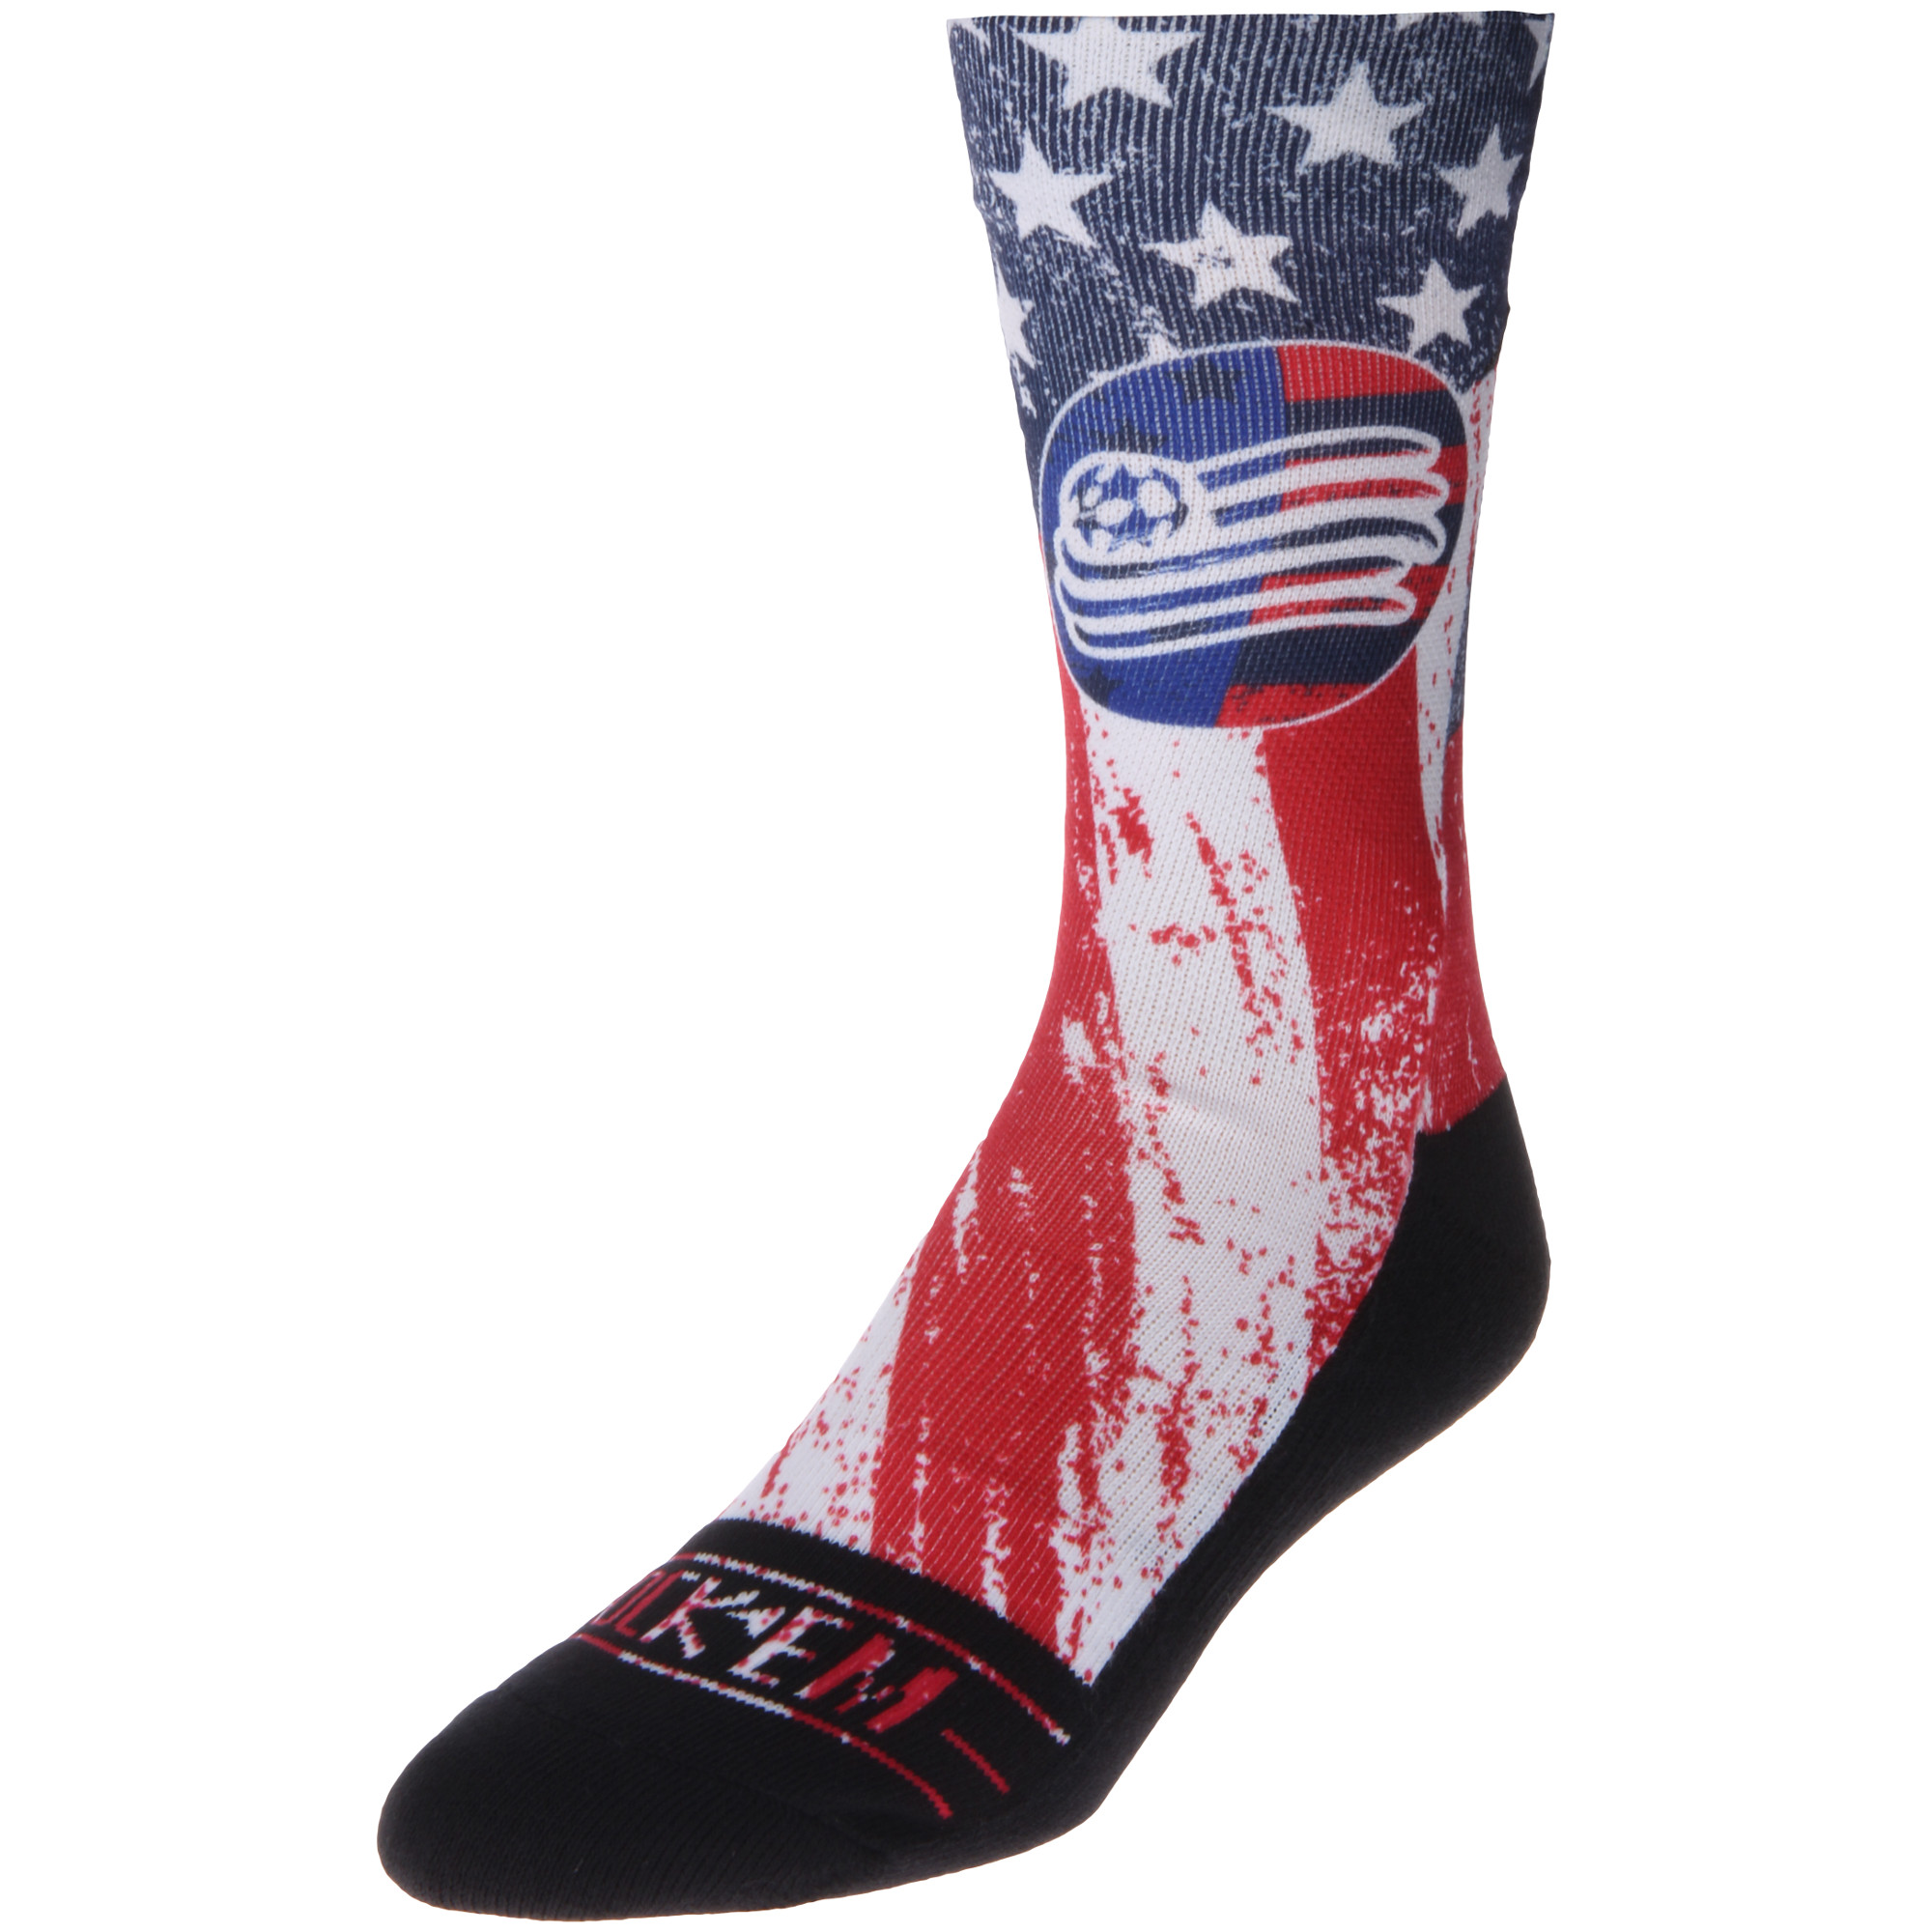 New England Revolution For Club and Country Socks - Blue